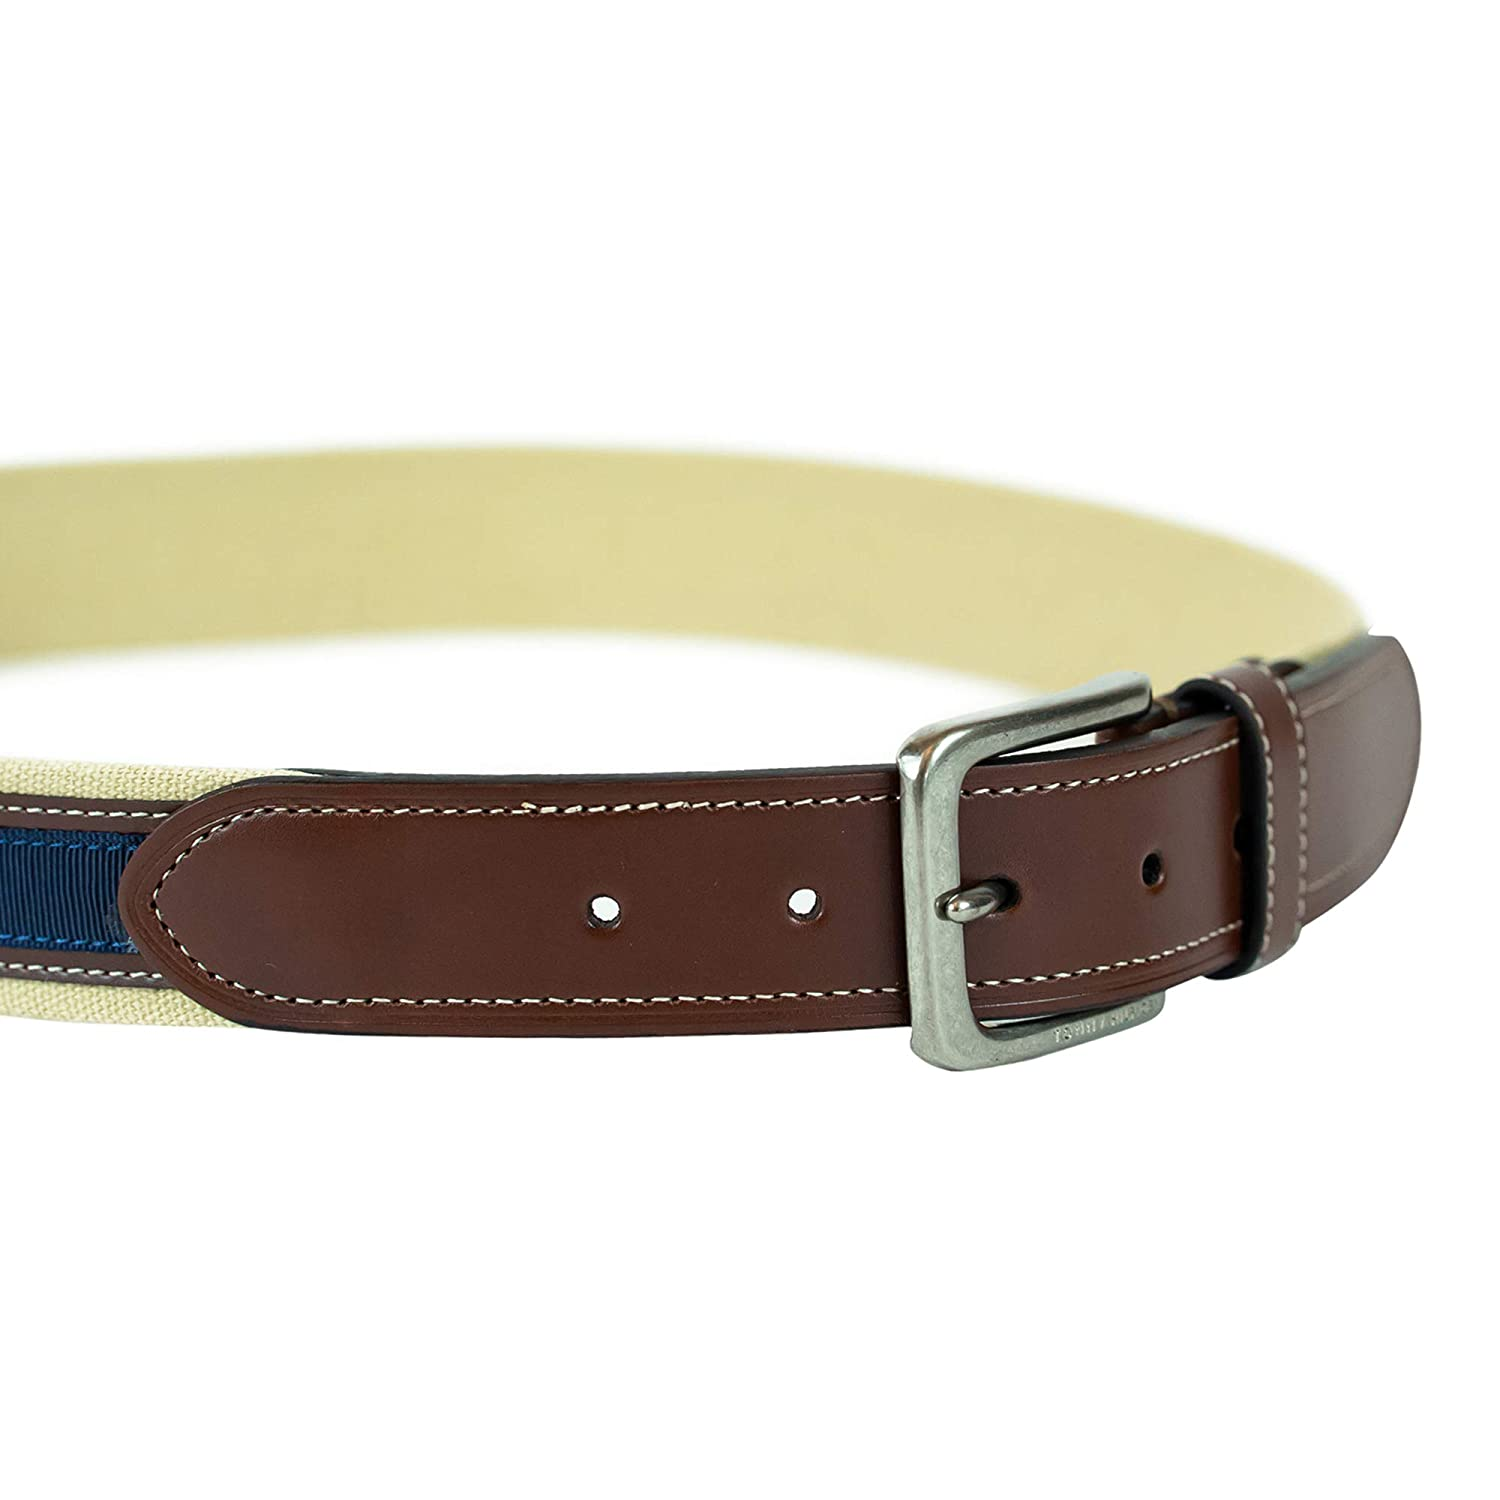 Tommy Hilfiger Mens Ribbon Inlay Belt Fabric Belt with Single Prong Buckle